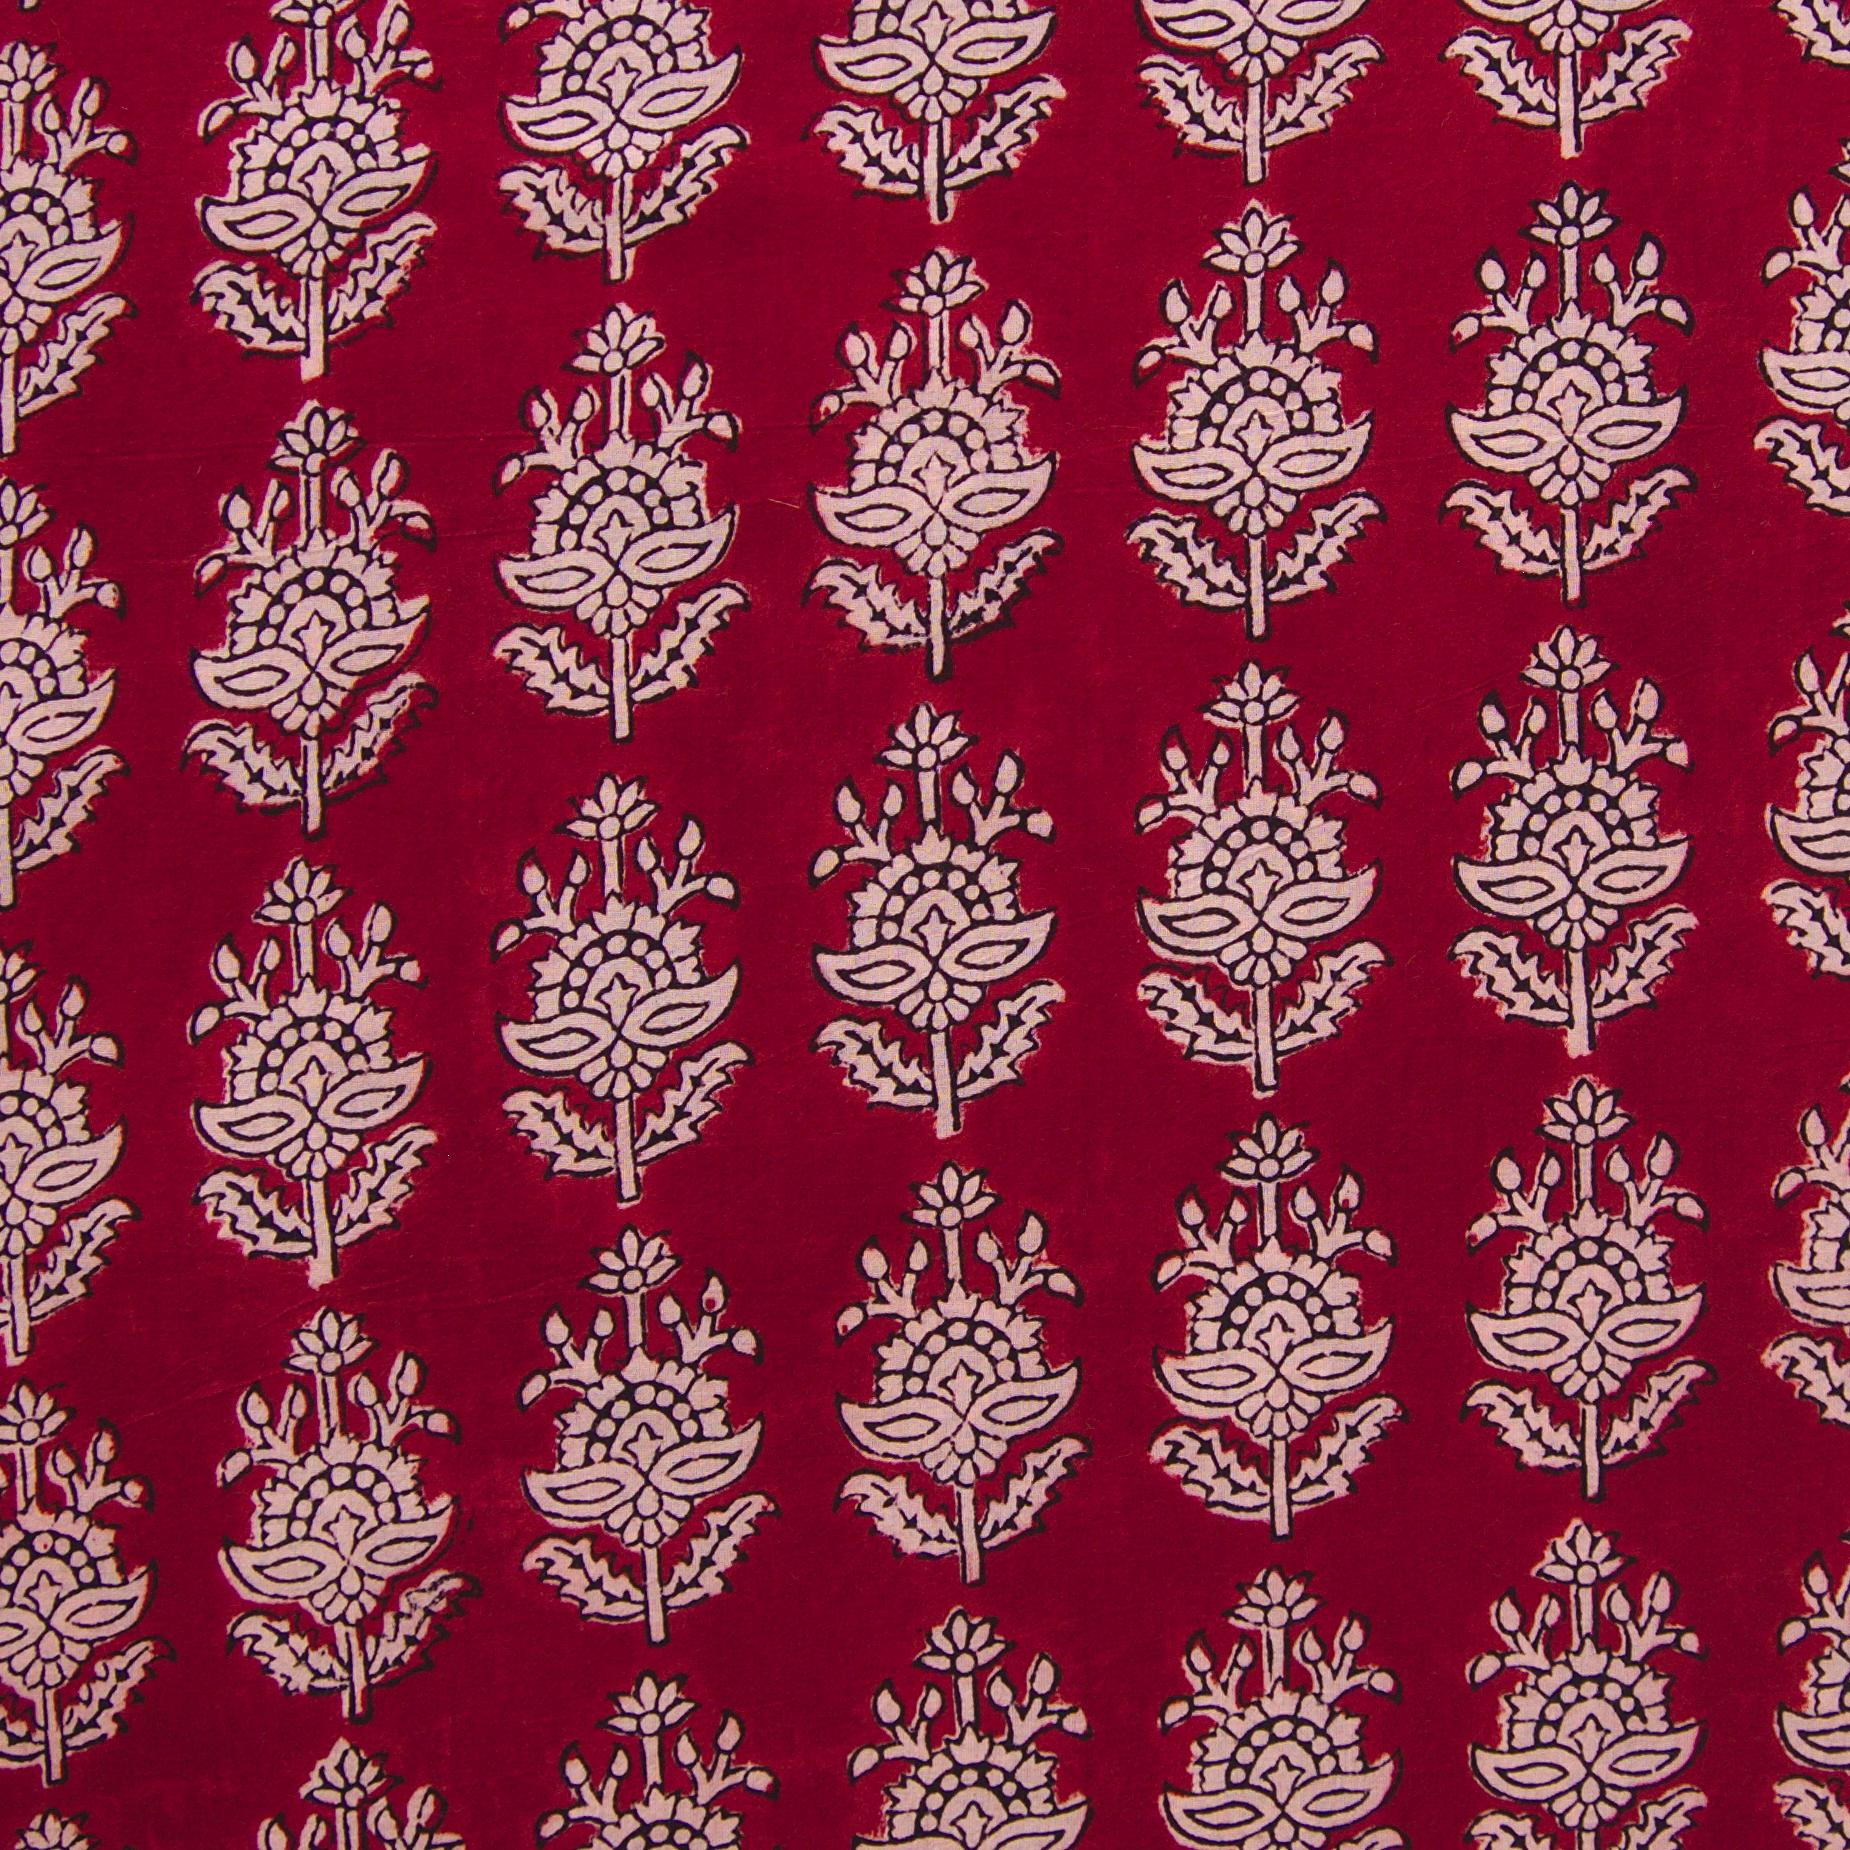 100% Block-Printed Cotton Fabric From India - Talkin' About Design - Iron Rust Black & Alizarin Red Dyes - Flat - Live